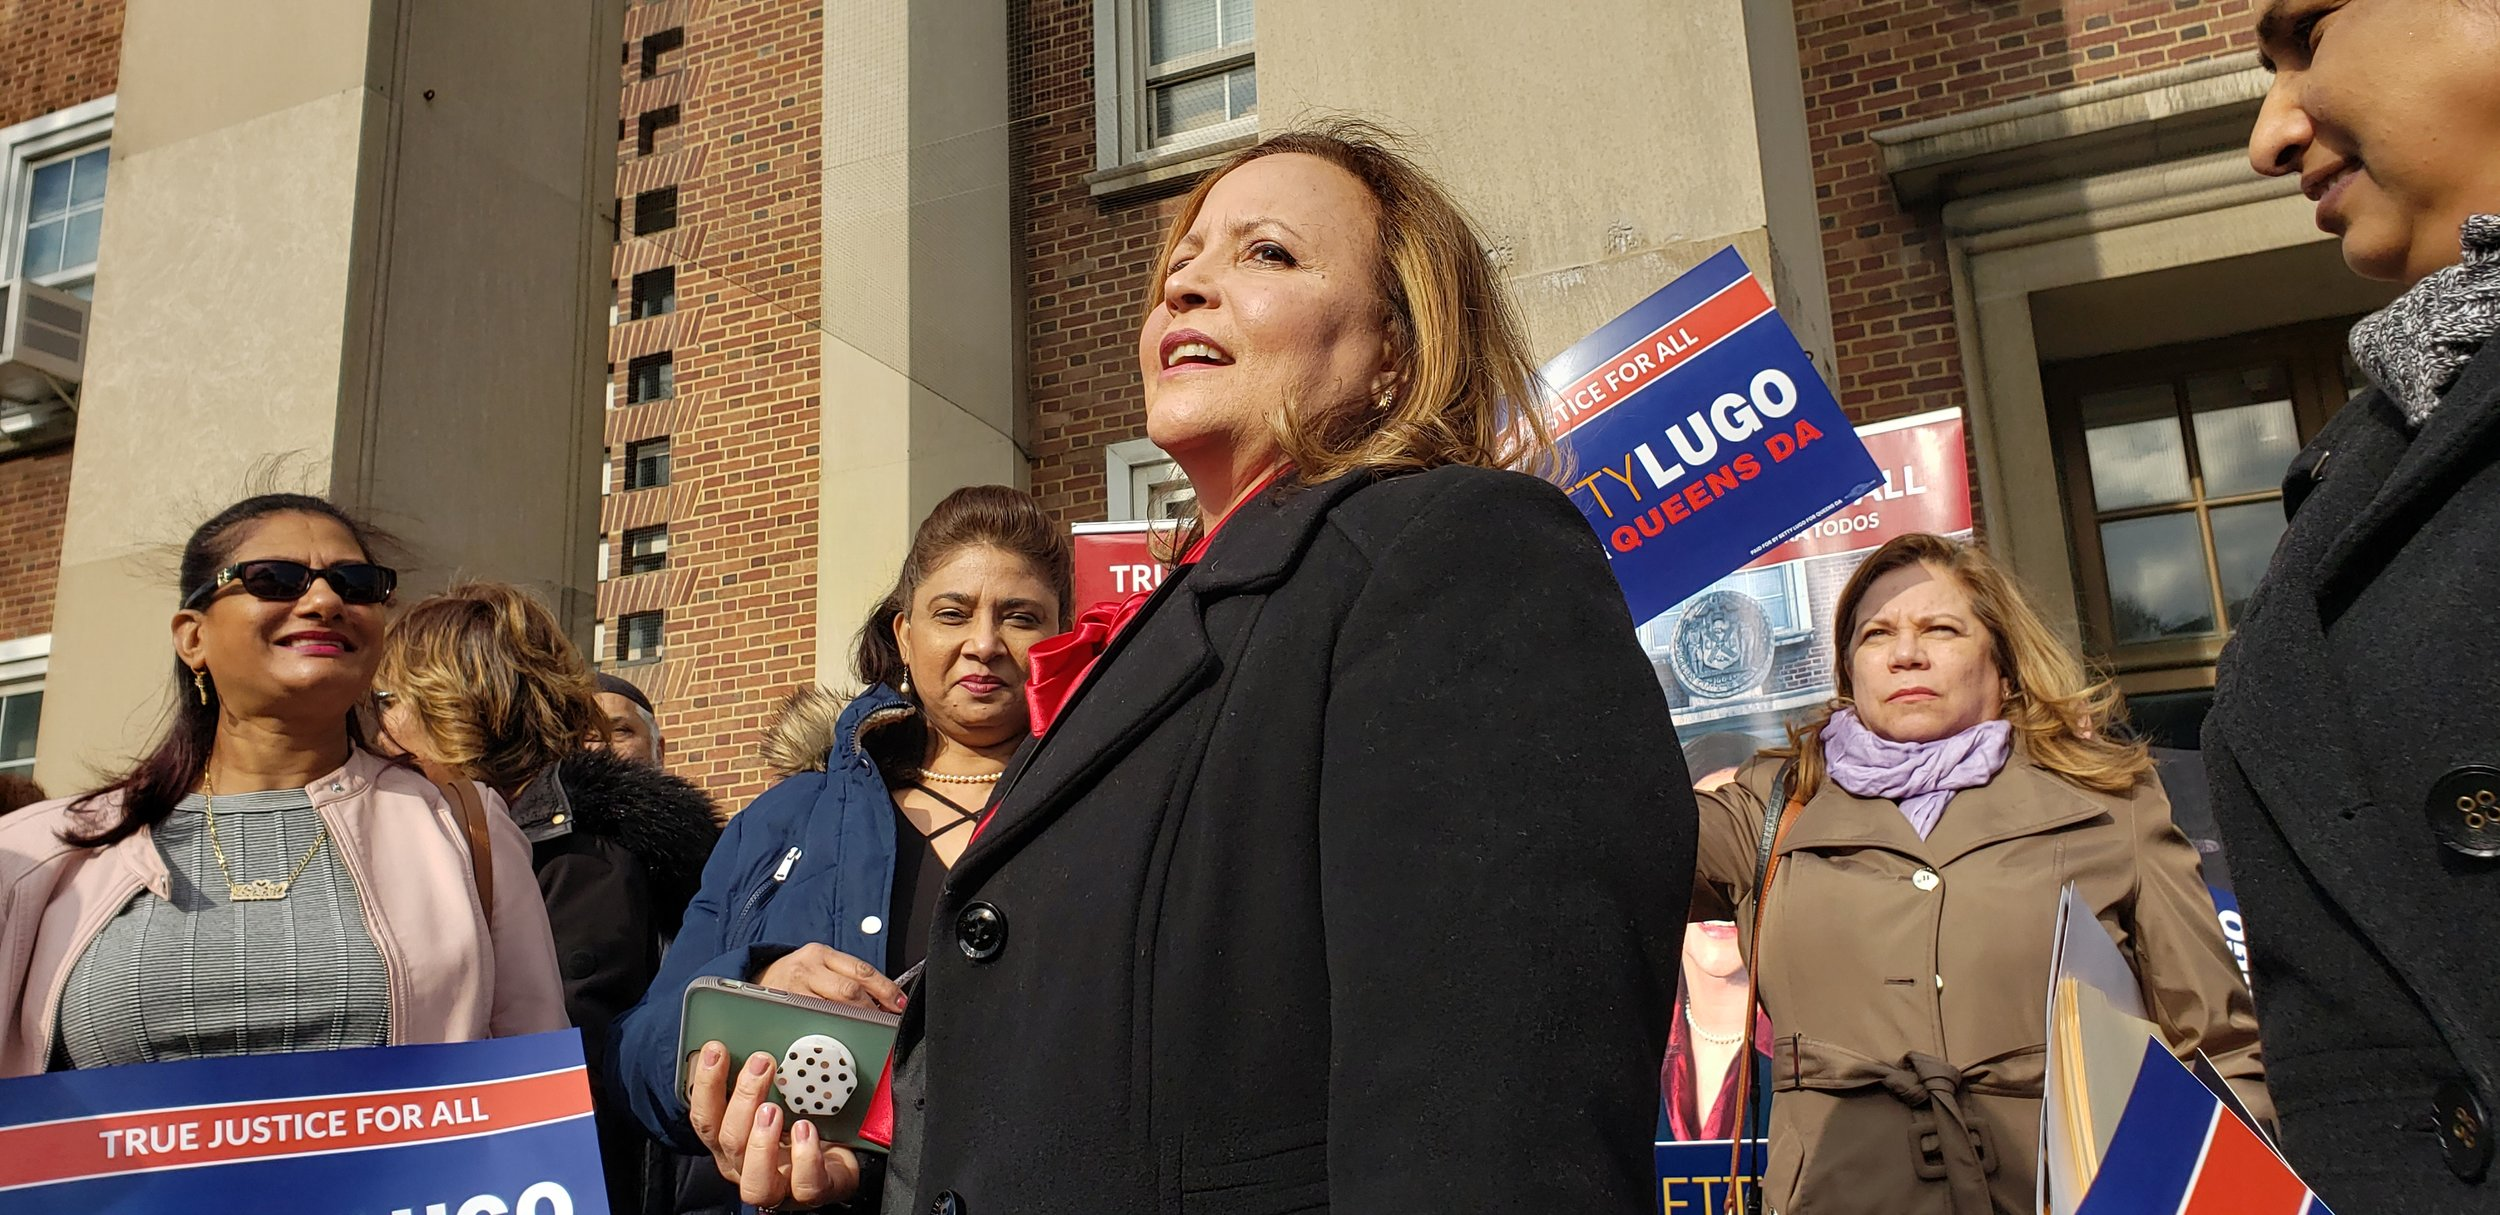 Betty Lugo kicks off her campaign for Queens DA earlier this year. Photo courtesy of Betty Lugo